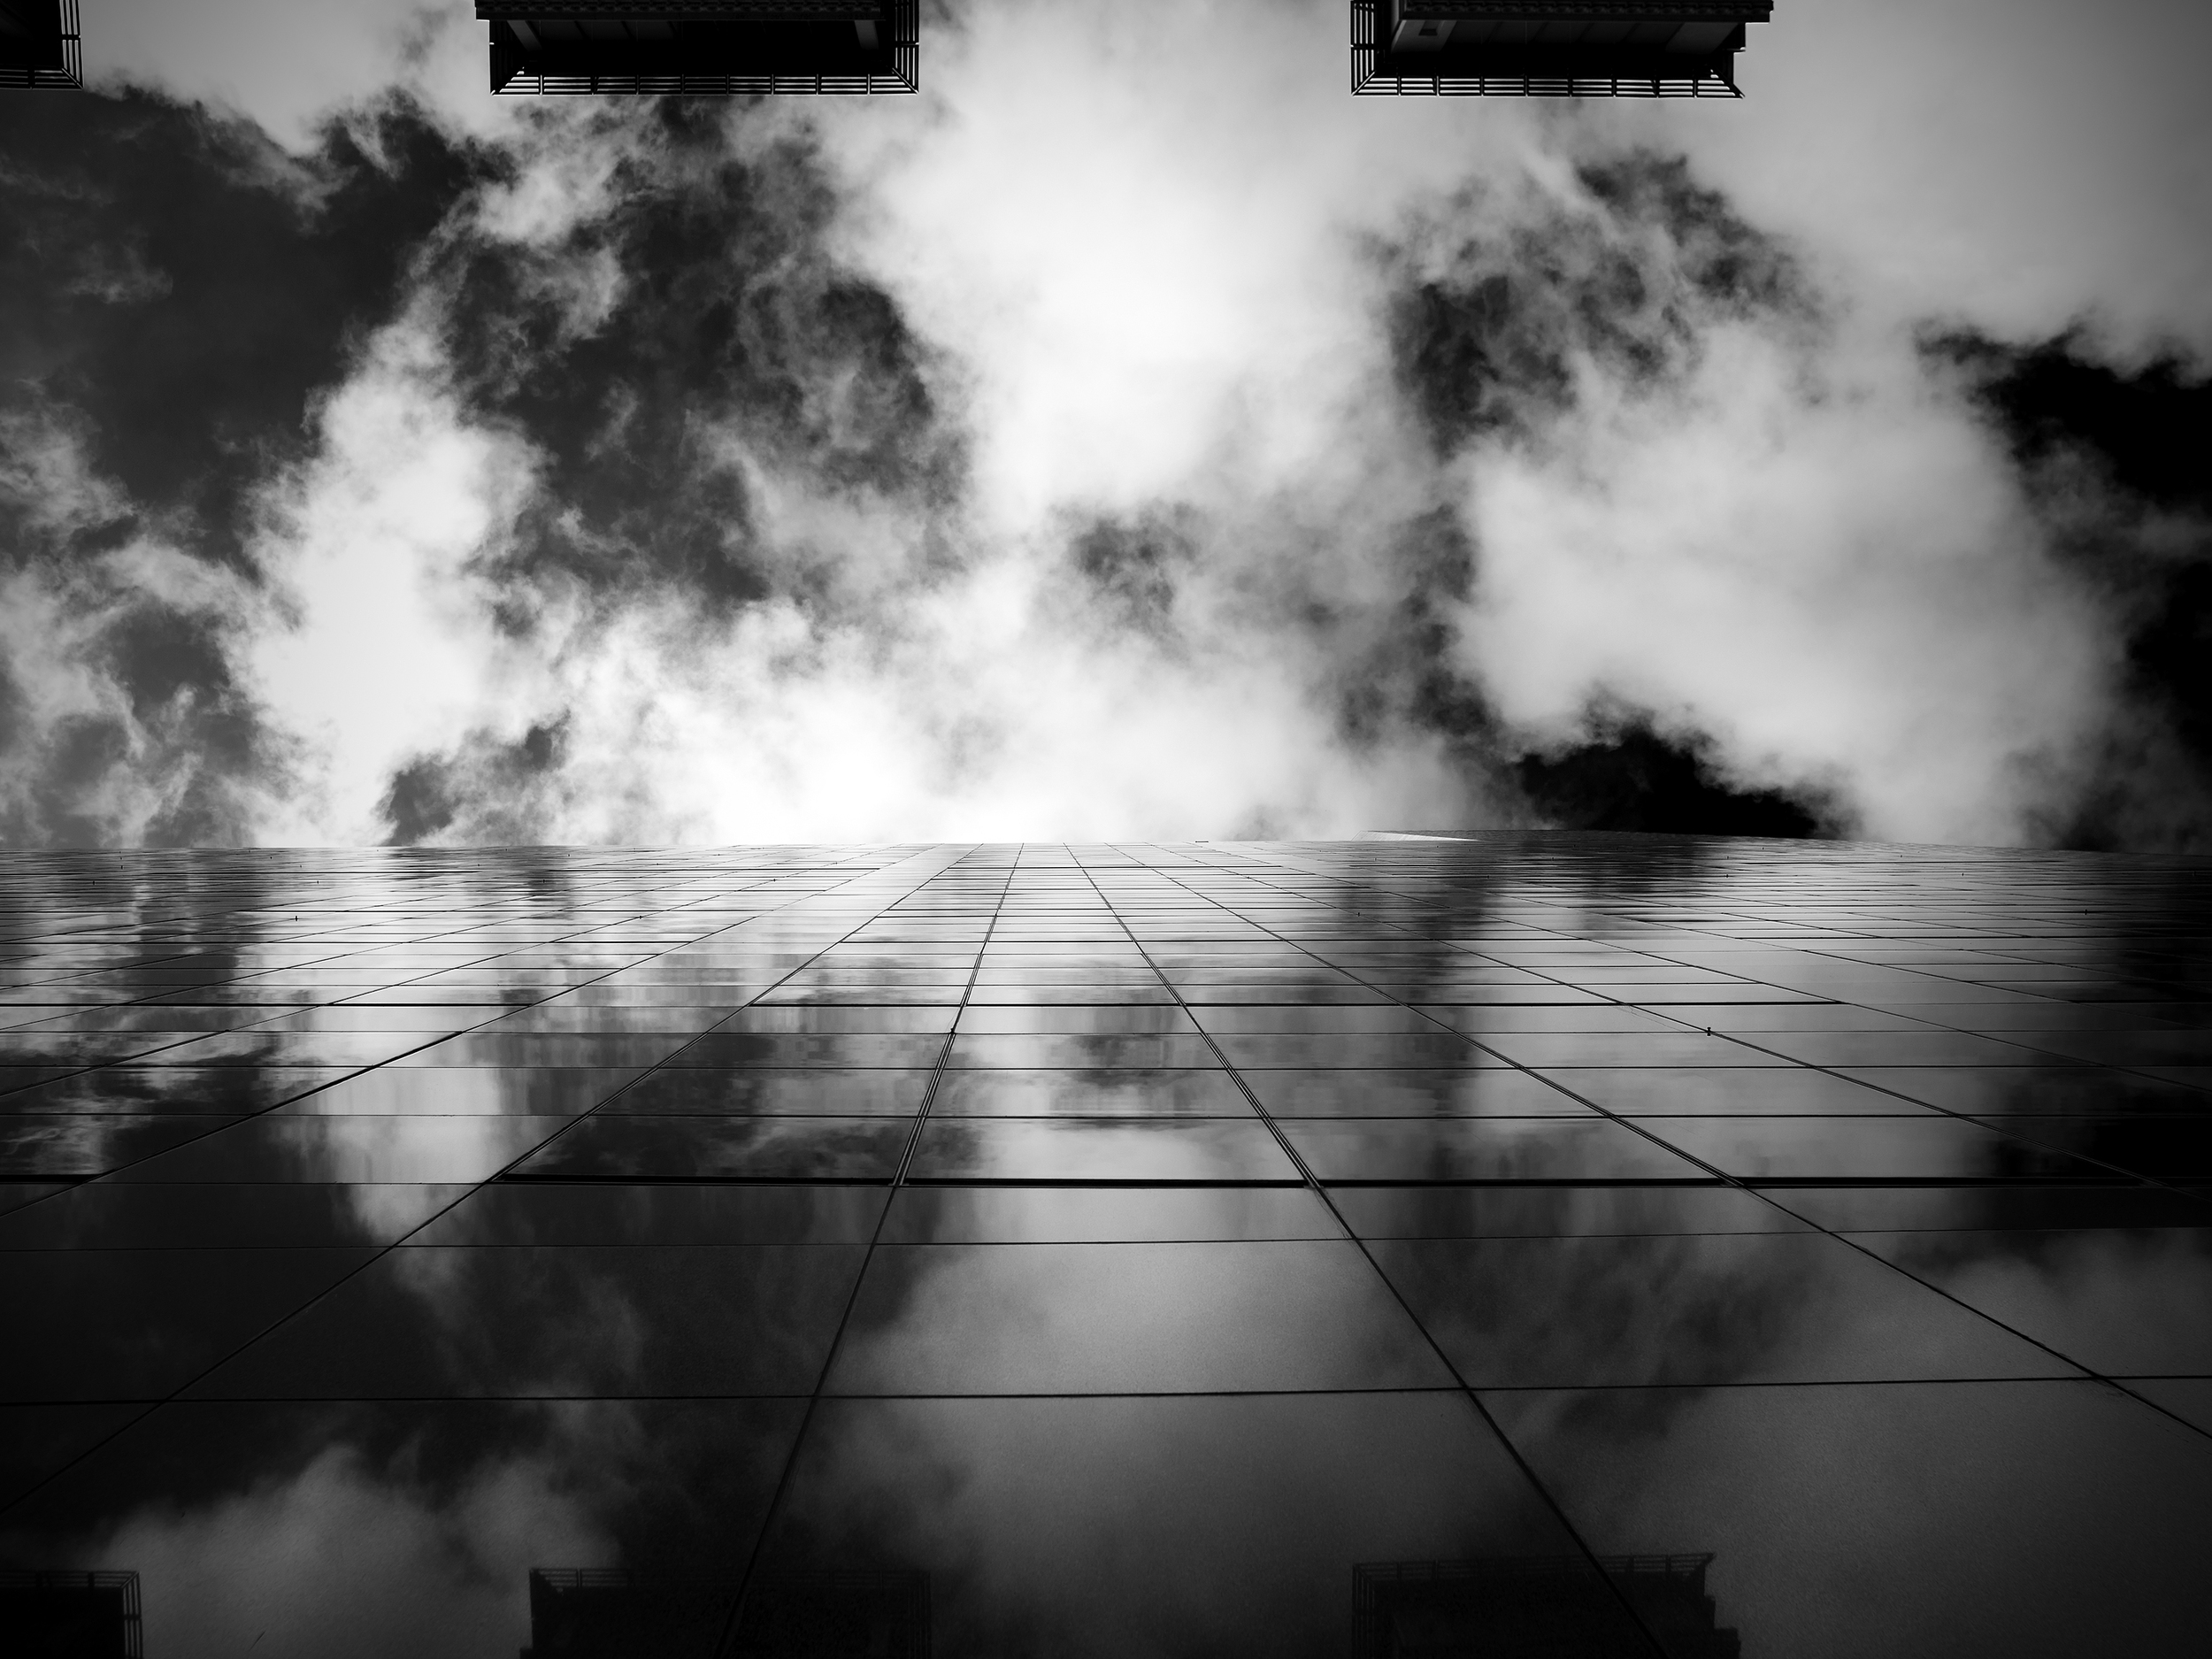 cityscapes2bw4x3small.jpg